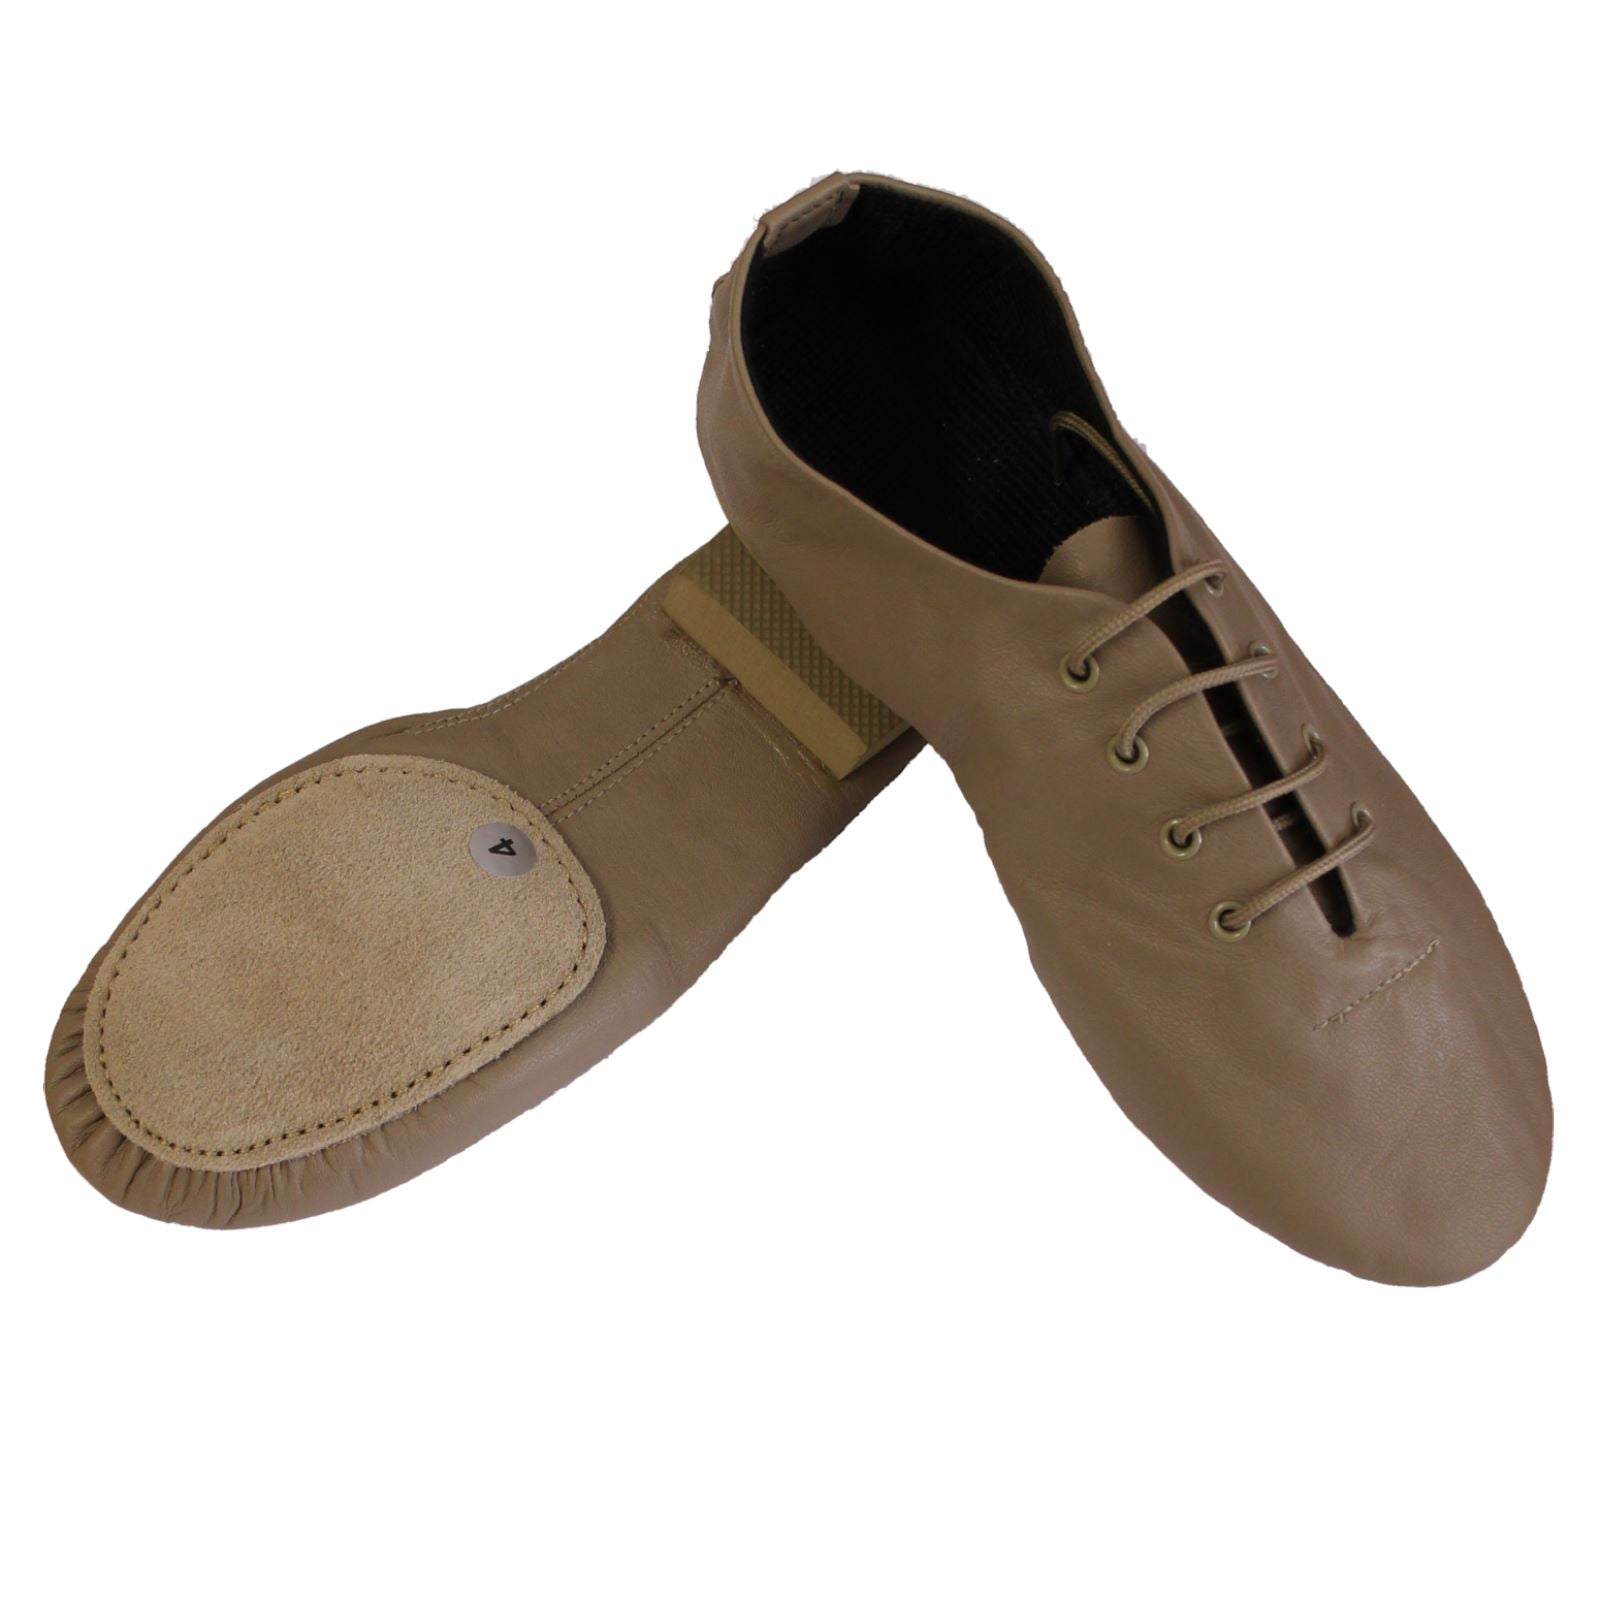 TAN SPLIT SOLE JAZZ SHOES WITH RUBBER